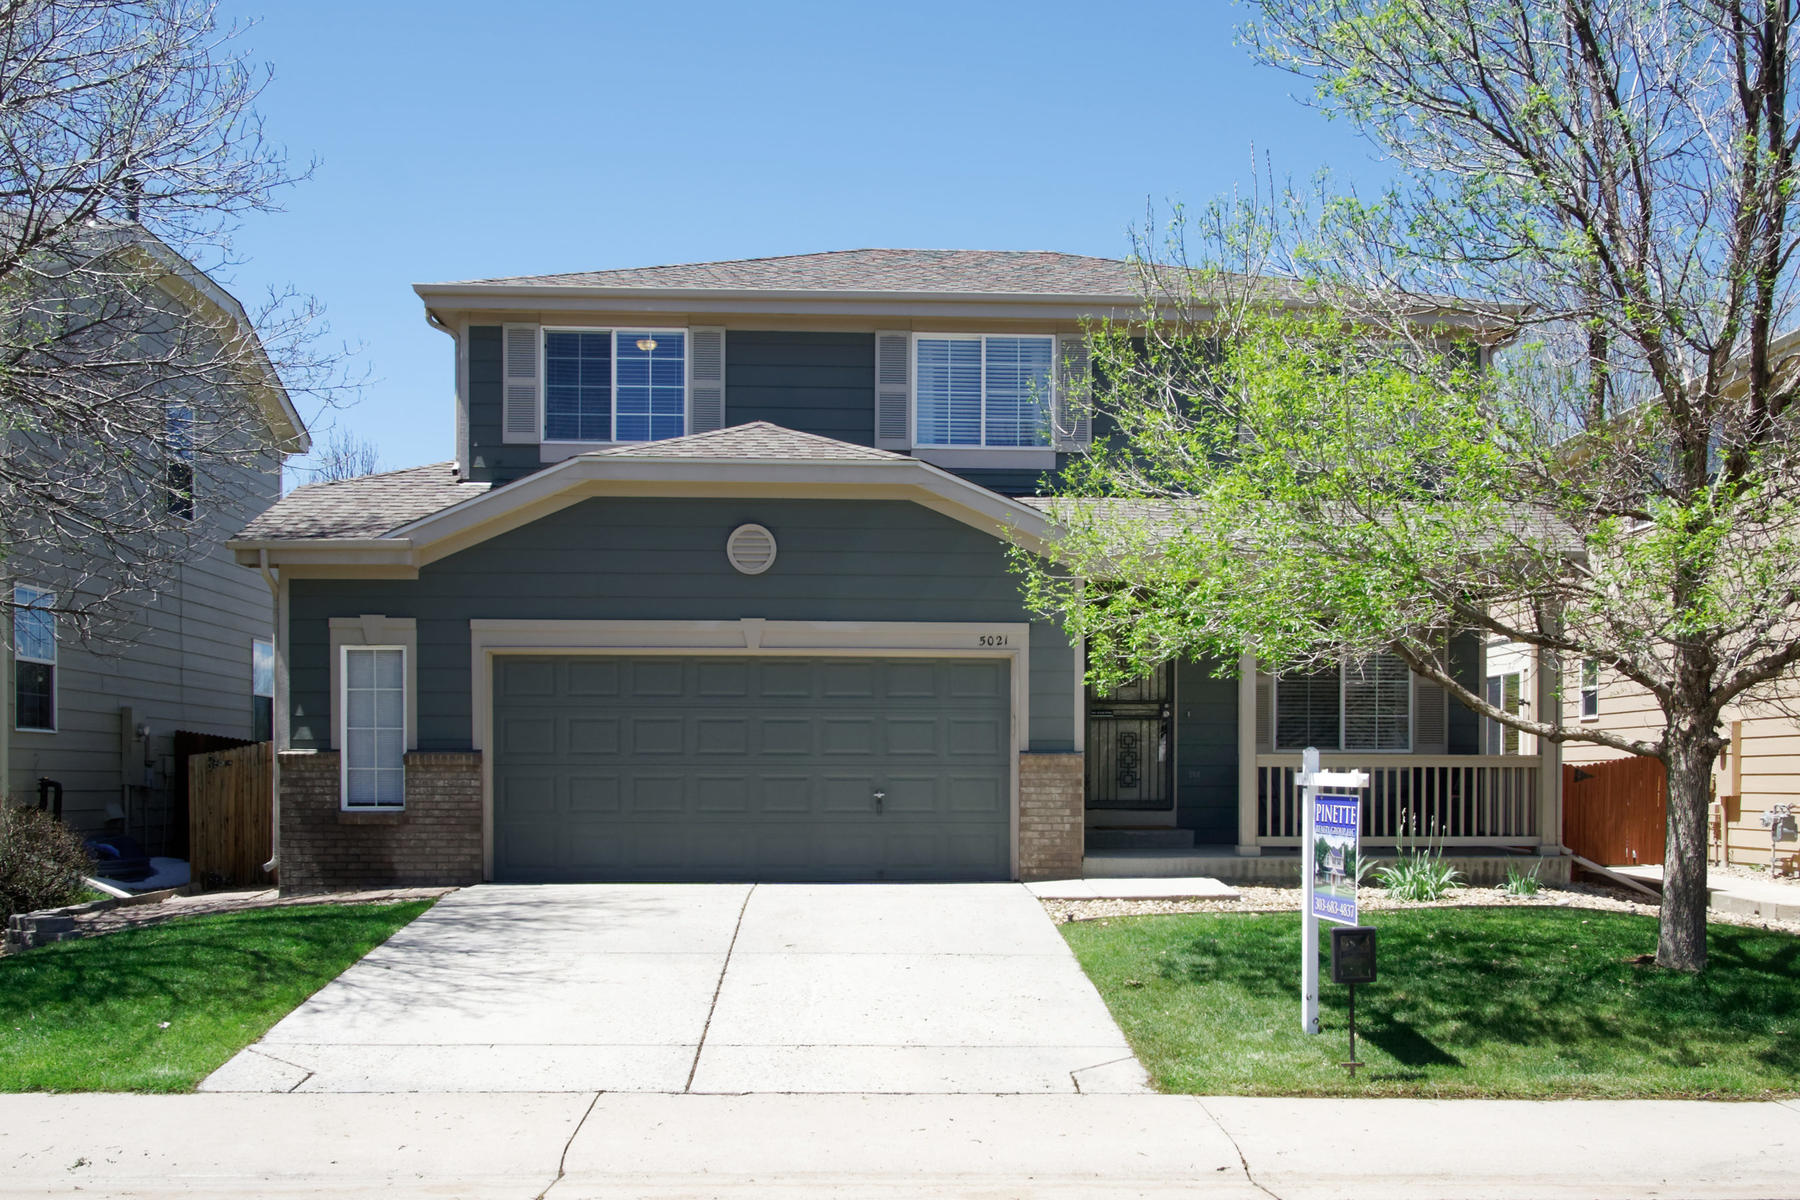 Pinery Glen 4 Bedroom 3 Bath Home - Parker, CO